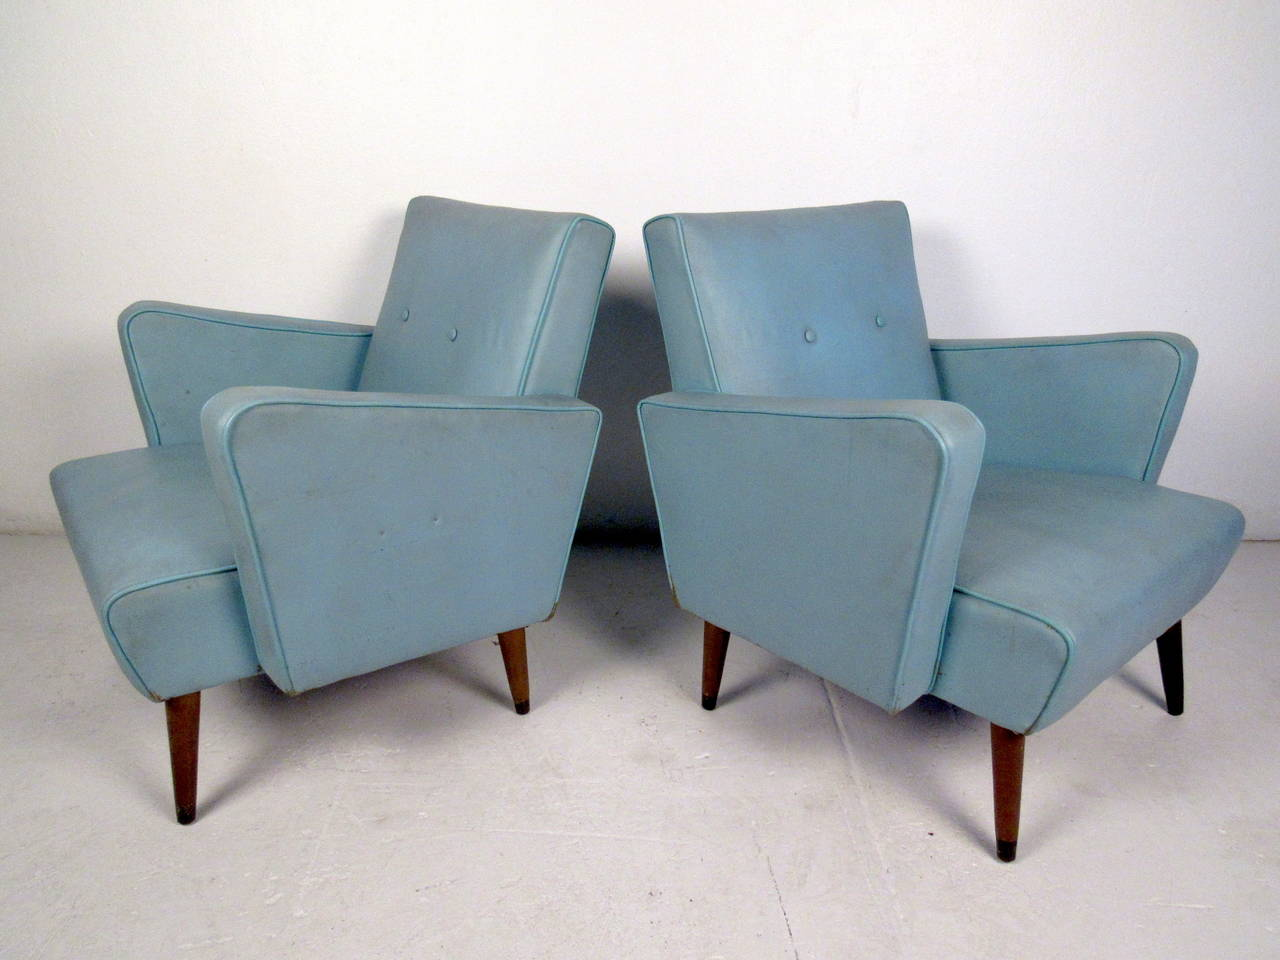 This Pair Of Mid Century Lounge Chairs Are In The Style Of Paul McCobb And  Feature